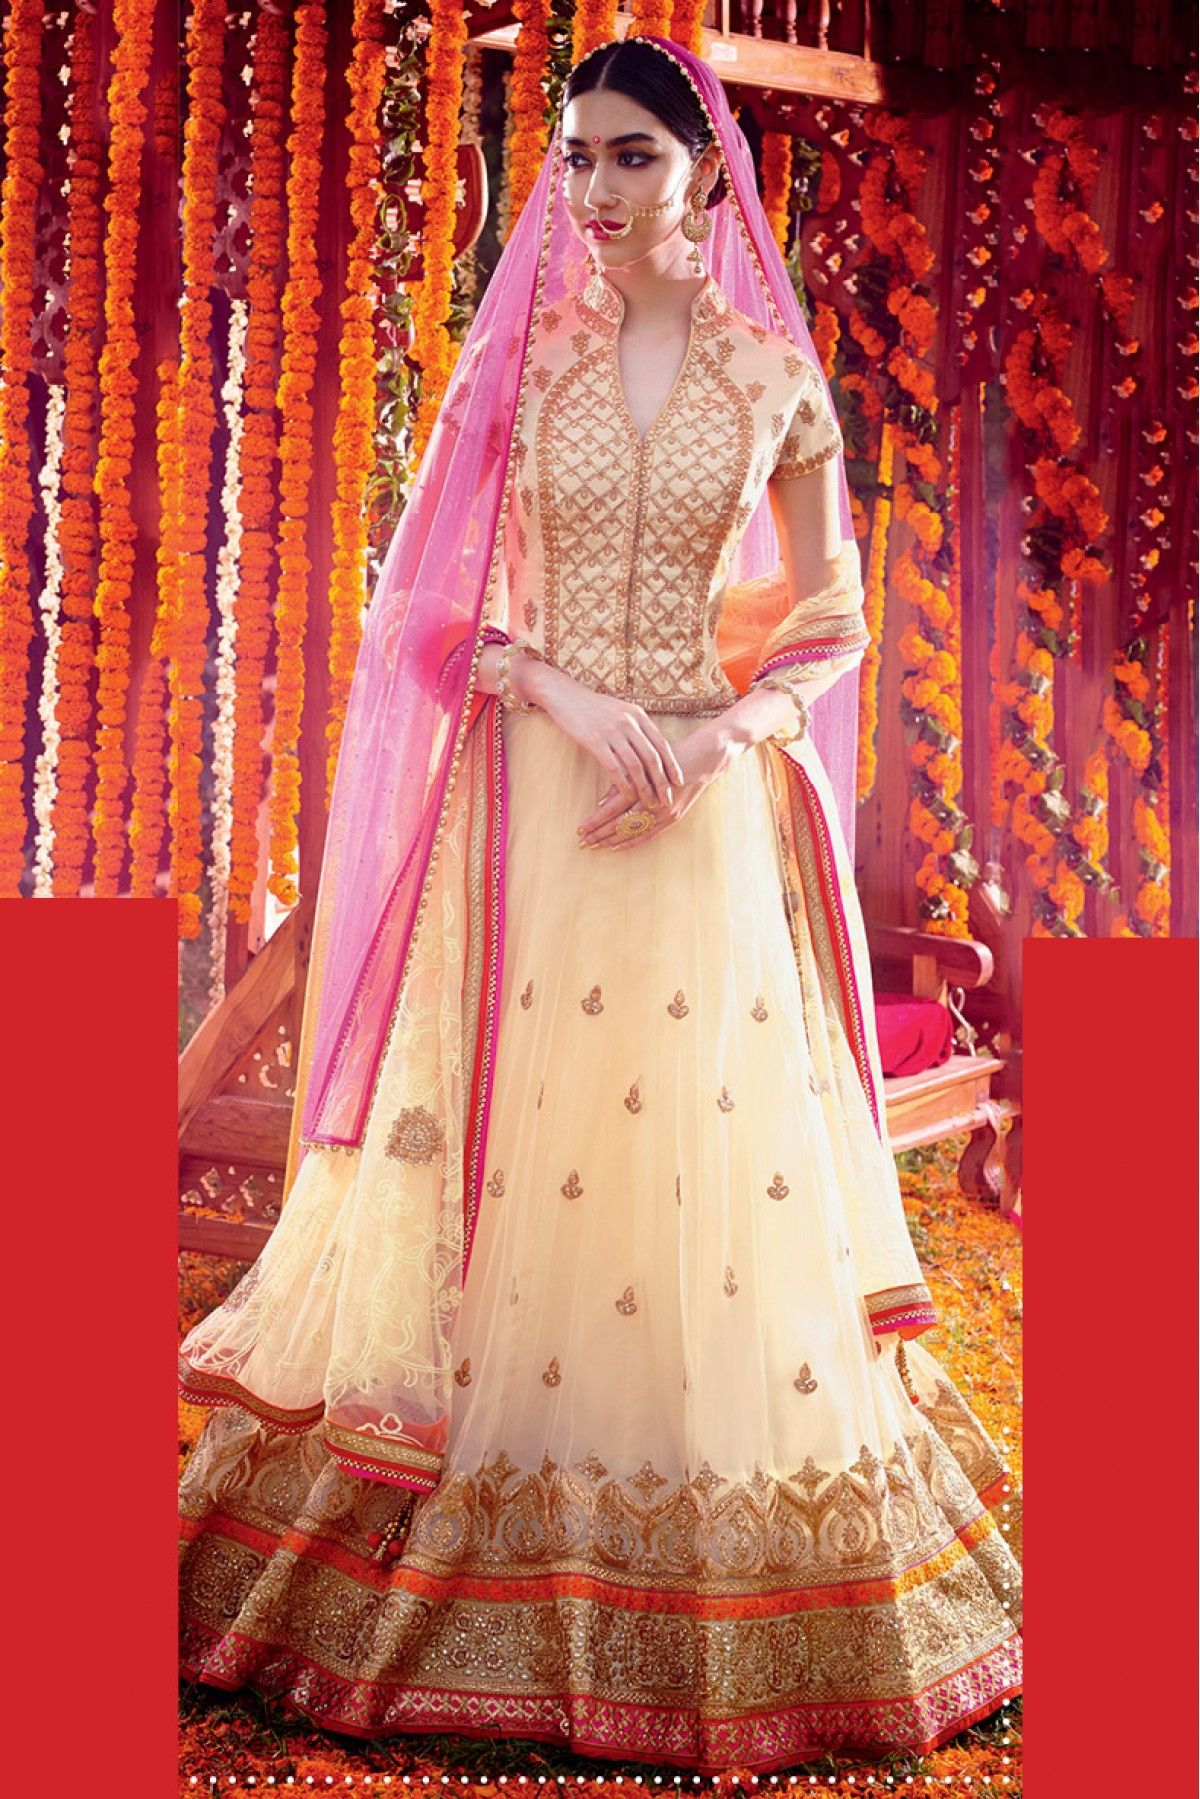 f3d6132adff72b Georgette Semi Stitched A-Line Lehenga Choli In Off White and Pink Colour